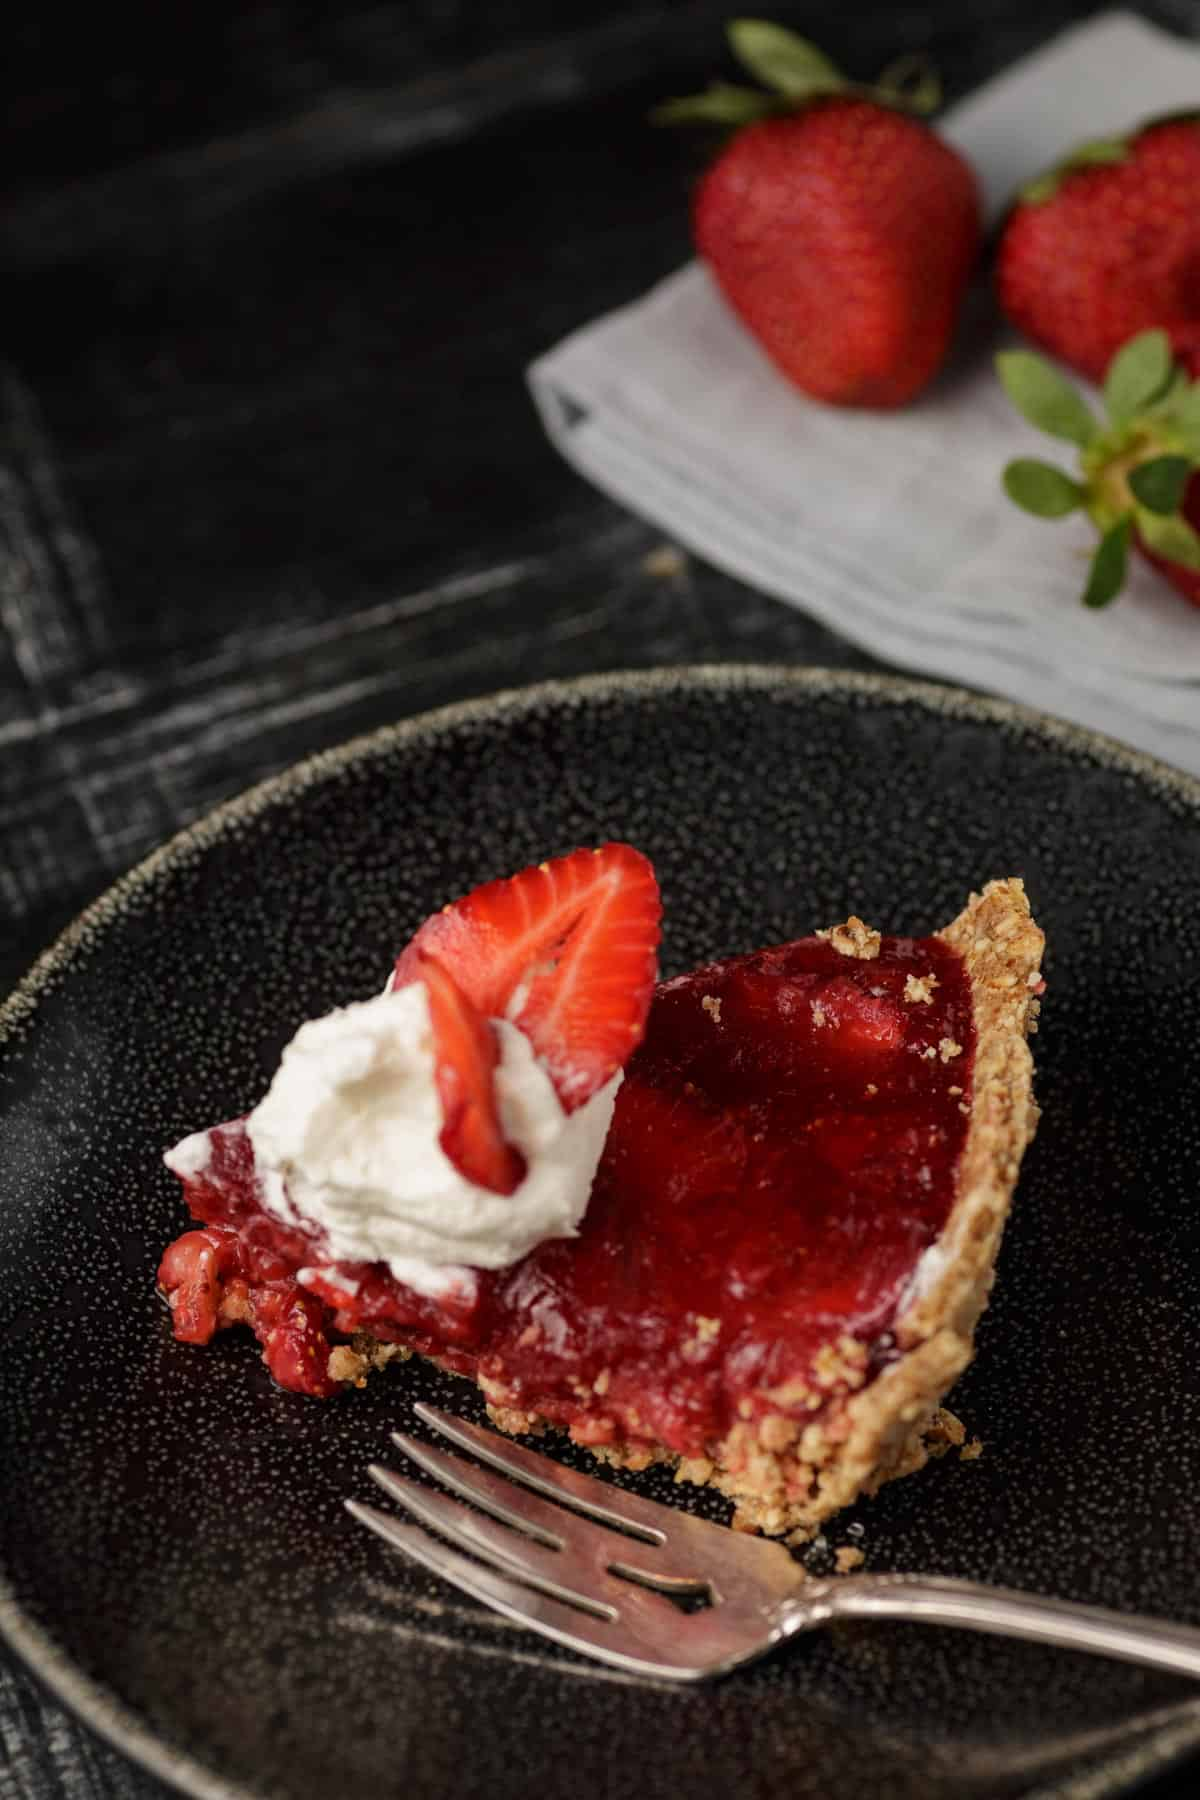 A slice of strawberry pie with whipped topping on a plate with a fork